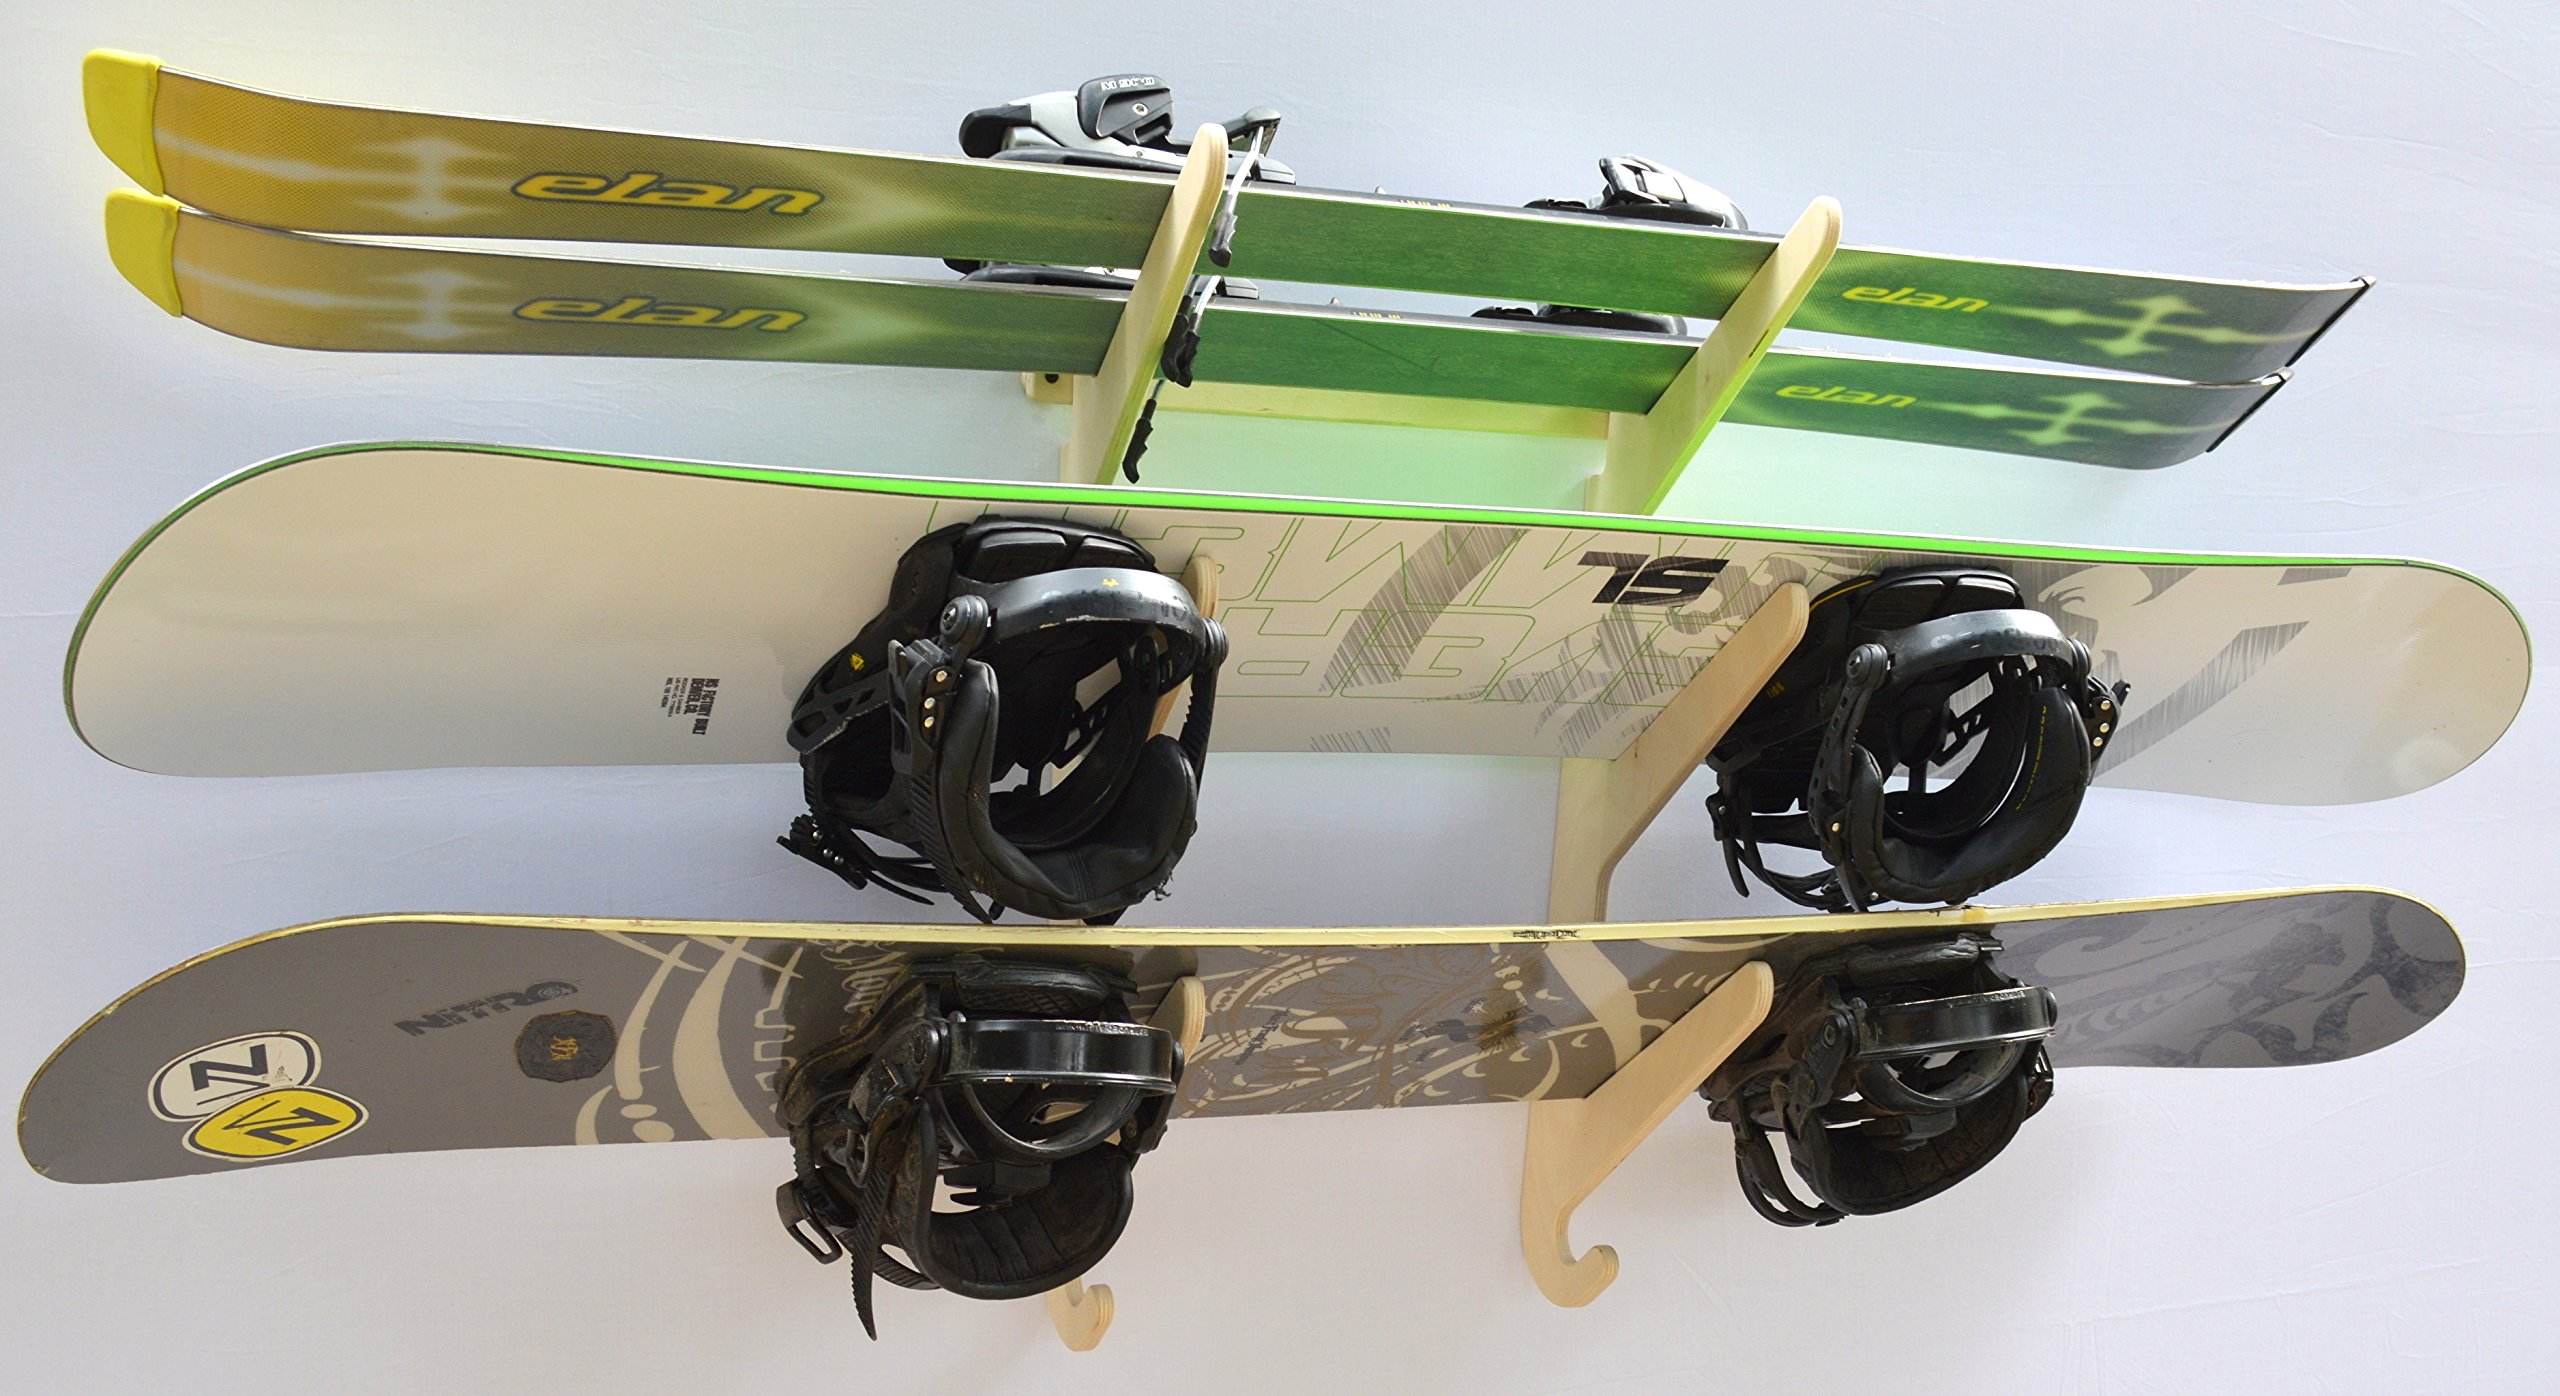 Snowboard Ski Hanging Wall Rack -- Holds 3 Boards